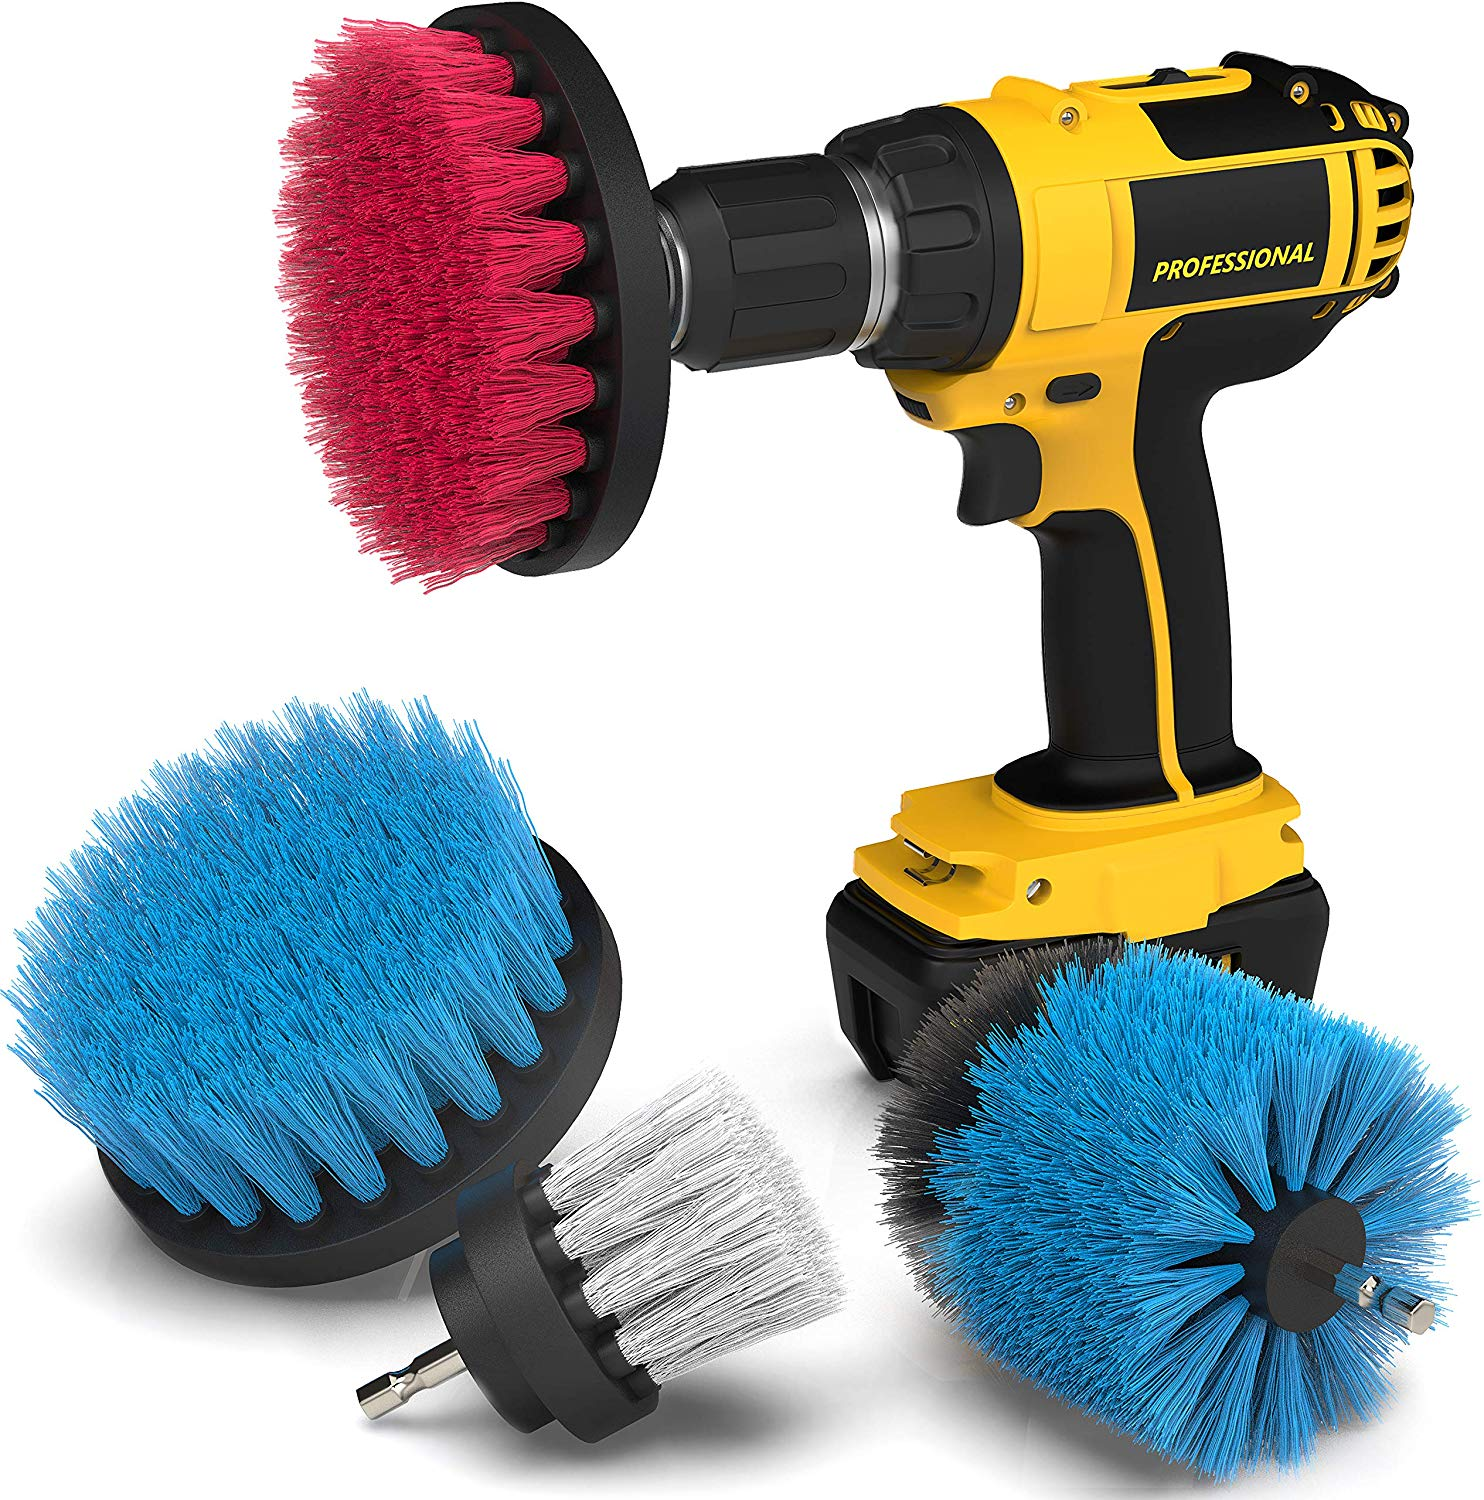 Drill Attachment Power Scrubber Turbo Scrub Kit Of 4 Scrubbing Brushes For Toilet Bathroom Wooden Floor Laundry Room Cleaning High Quality Brush And Easy To Use Walmart Com Walmart Com